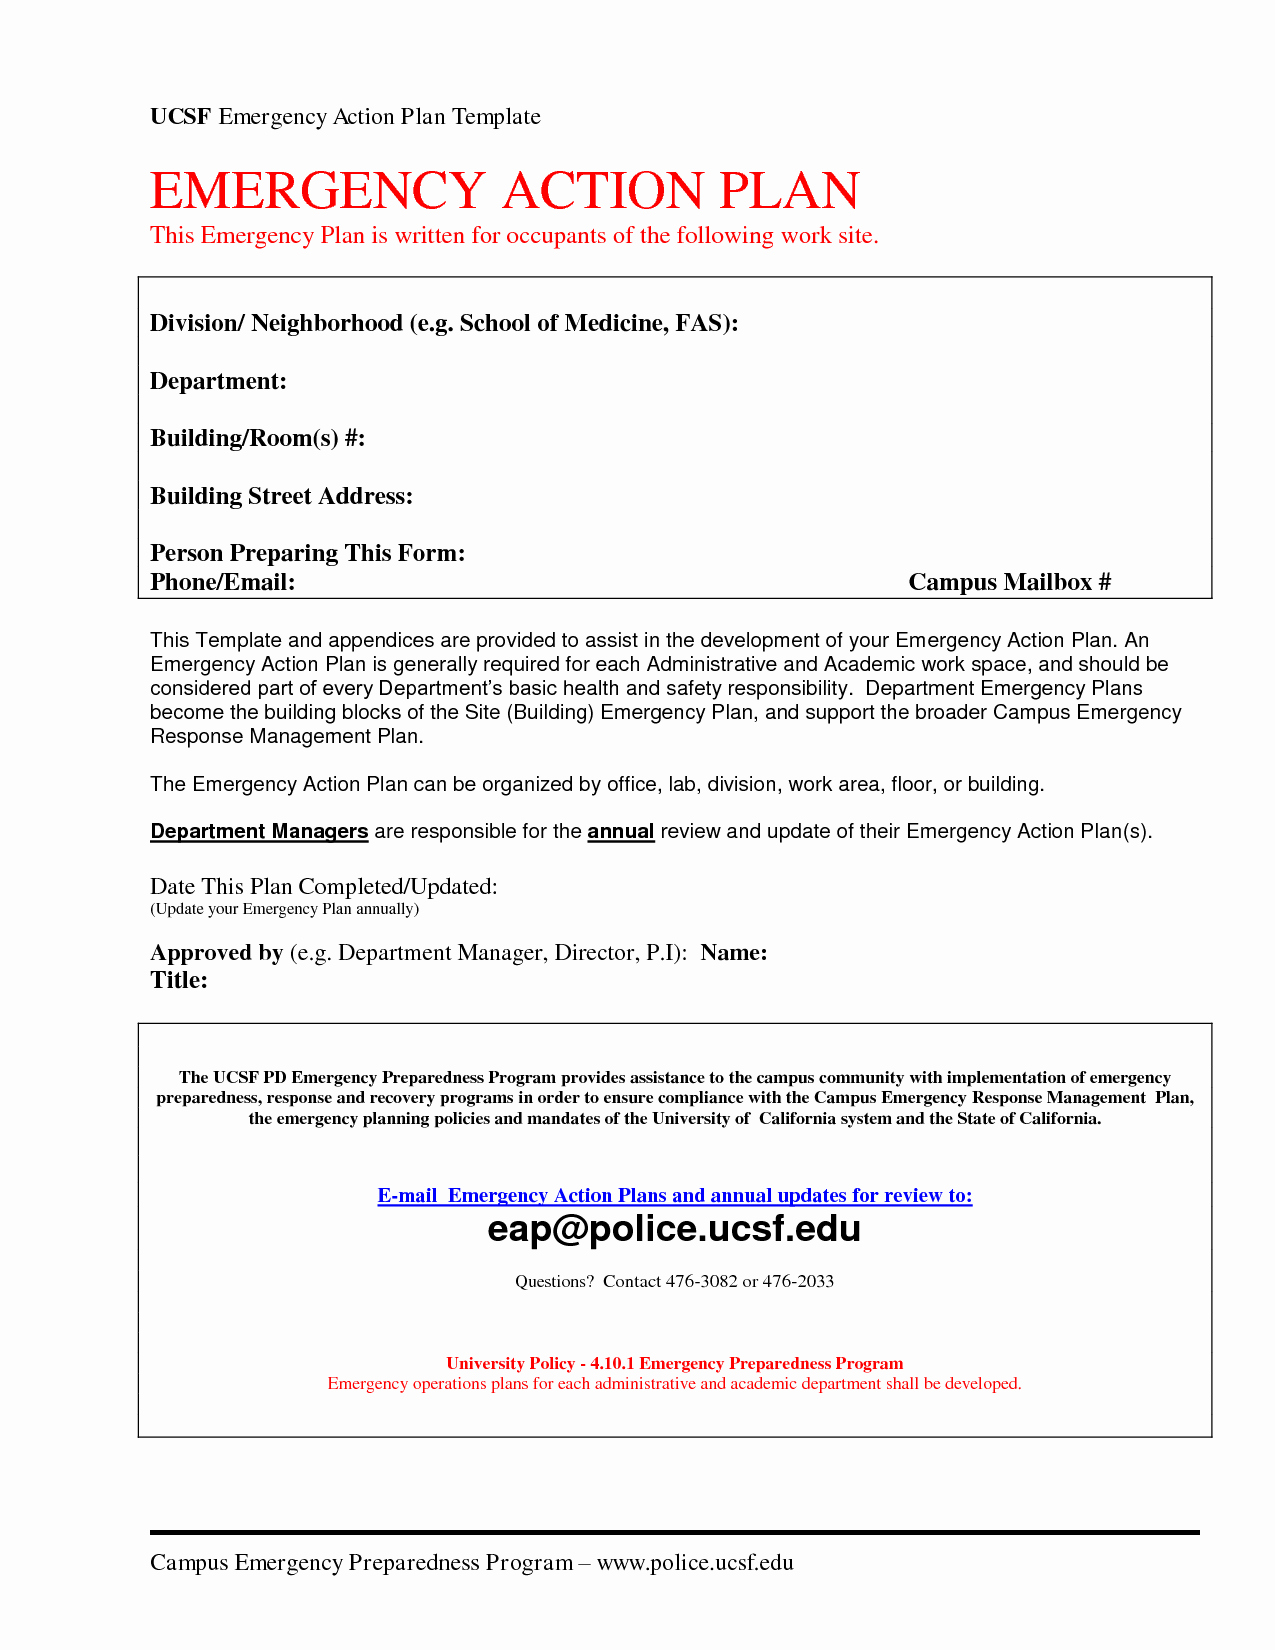 Emergency Action Plans Examples Elegant Emergency Action Plan Template